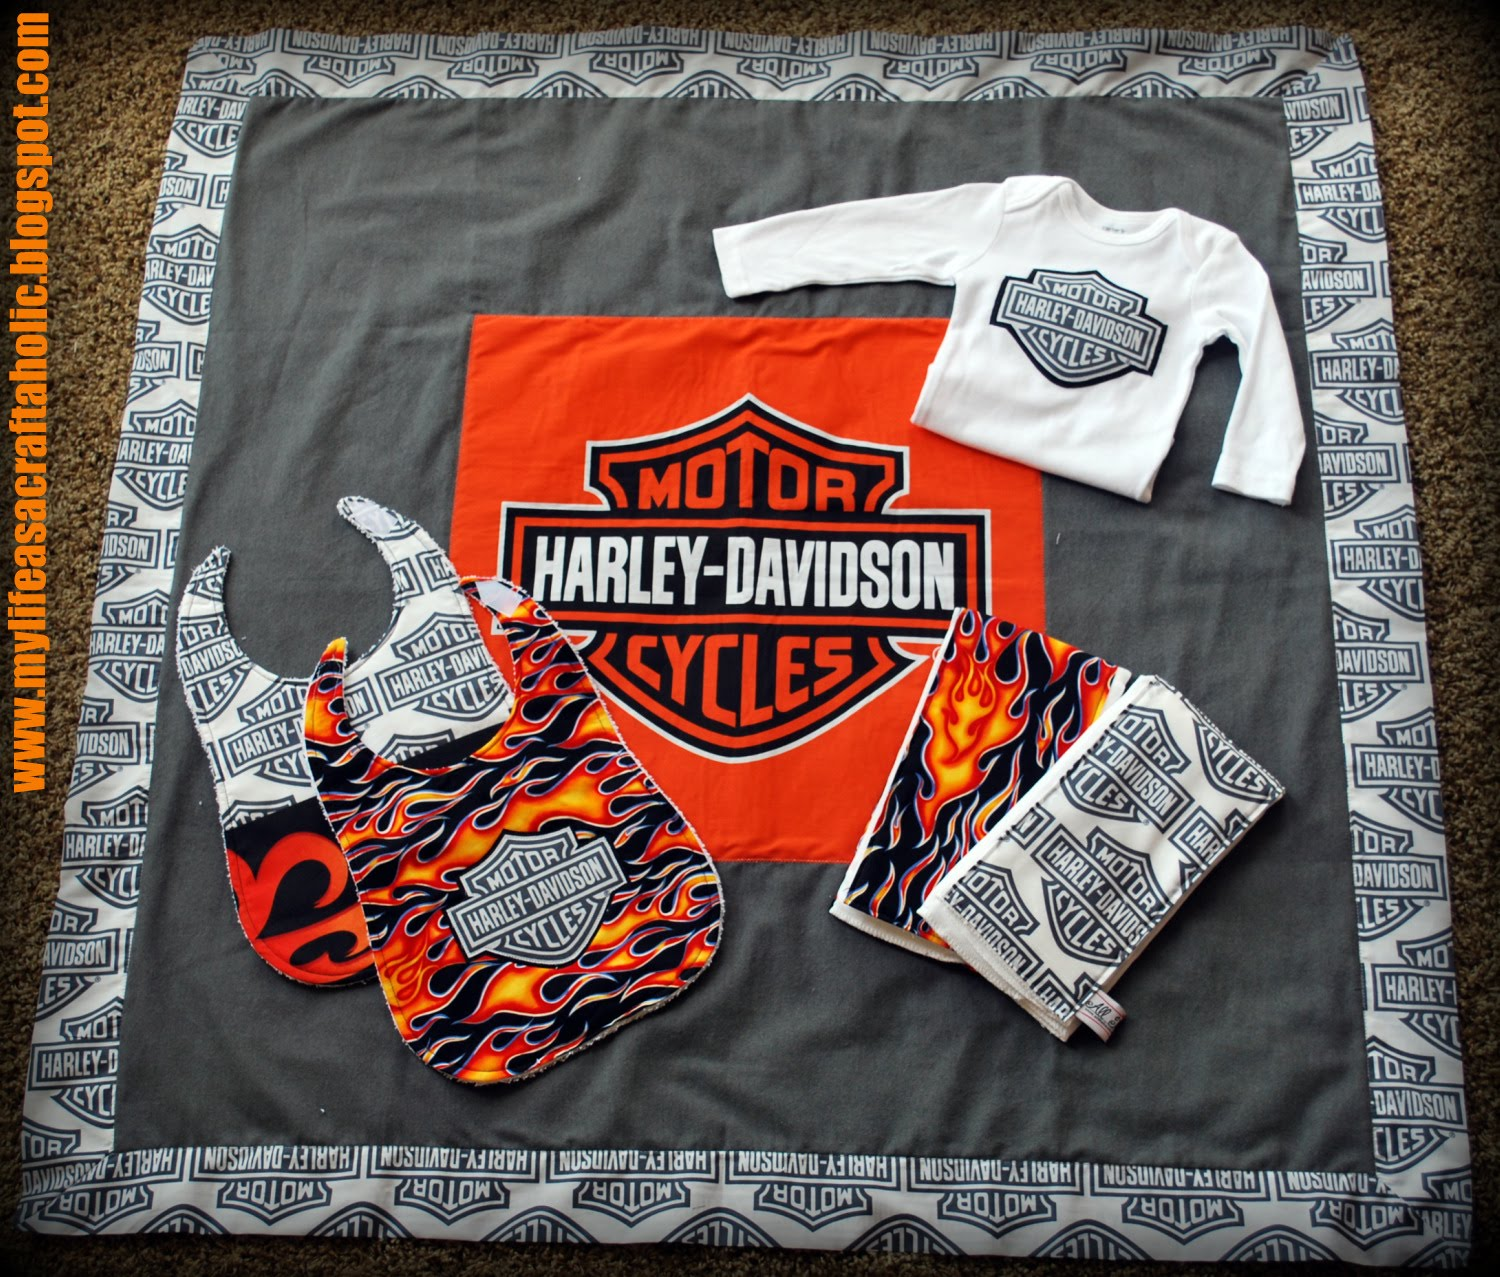 my life as a craftaholic!: fun with Harley Davidson